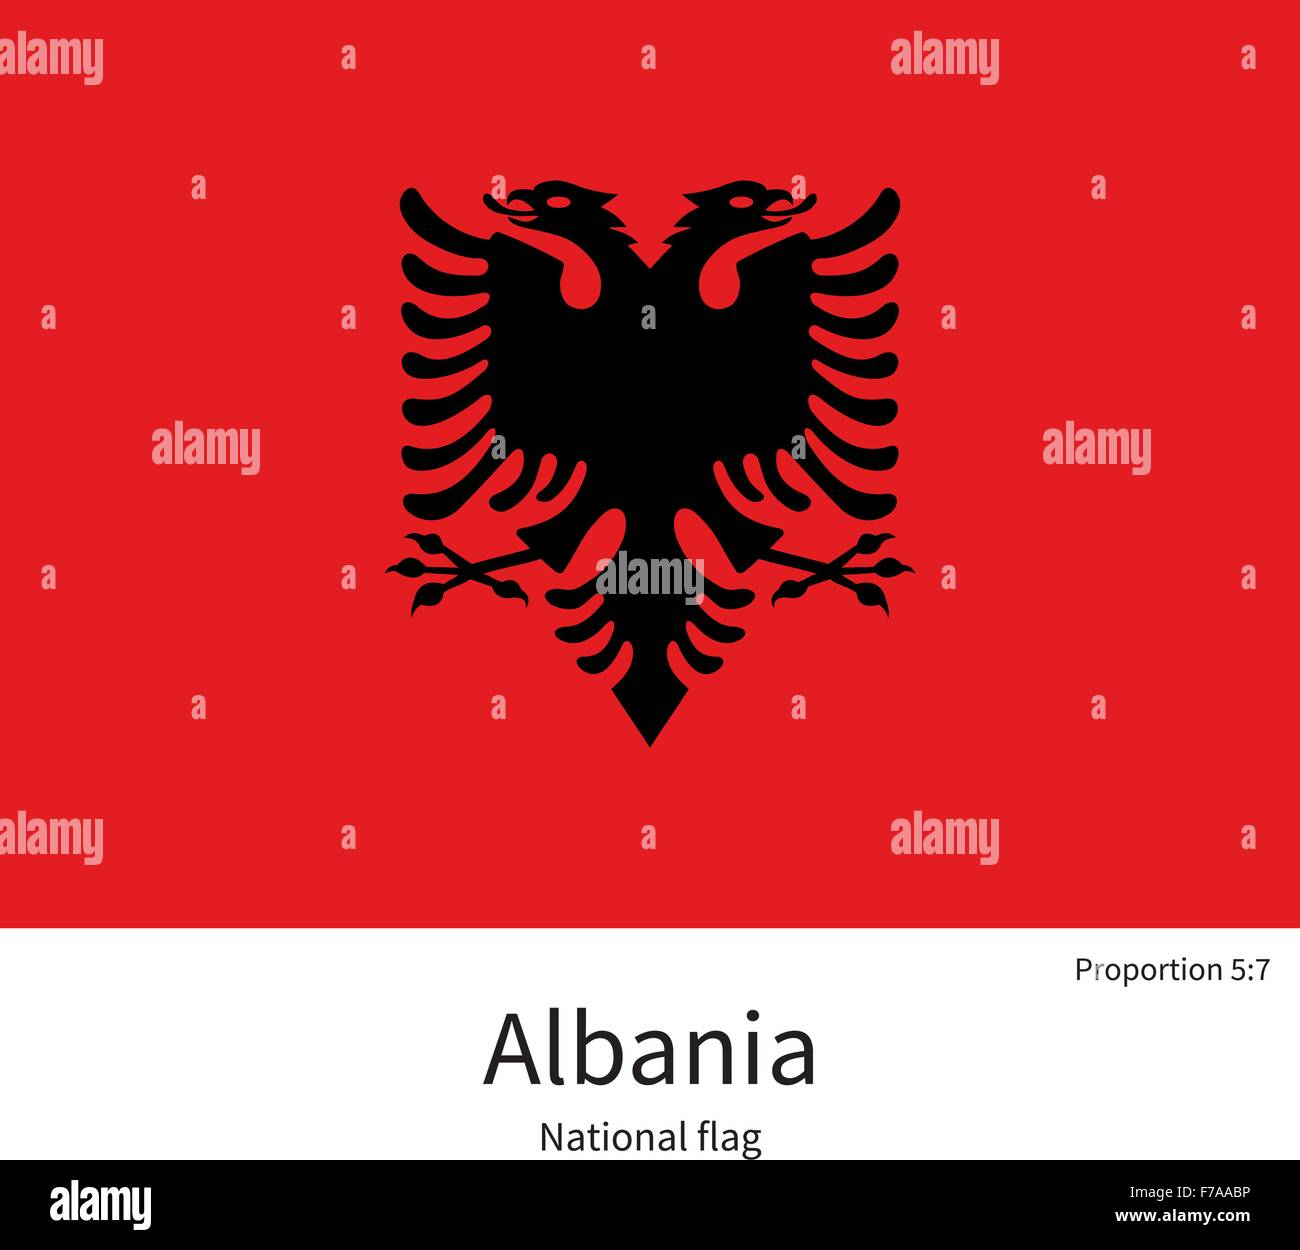 National flag of Albania with correct proportions, element, colors - Stock Vector